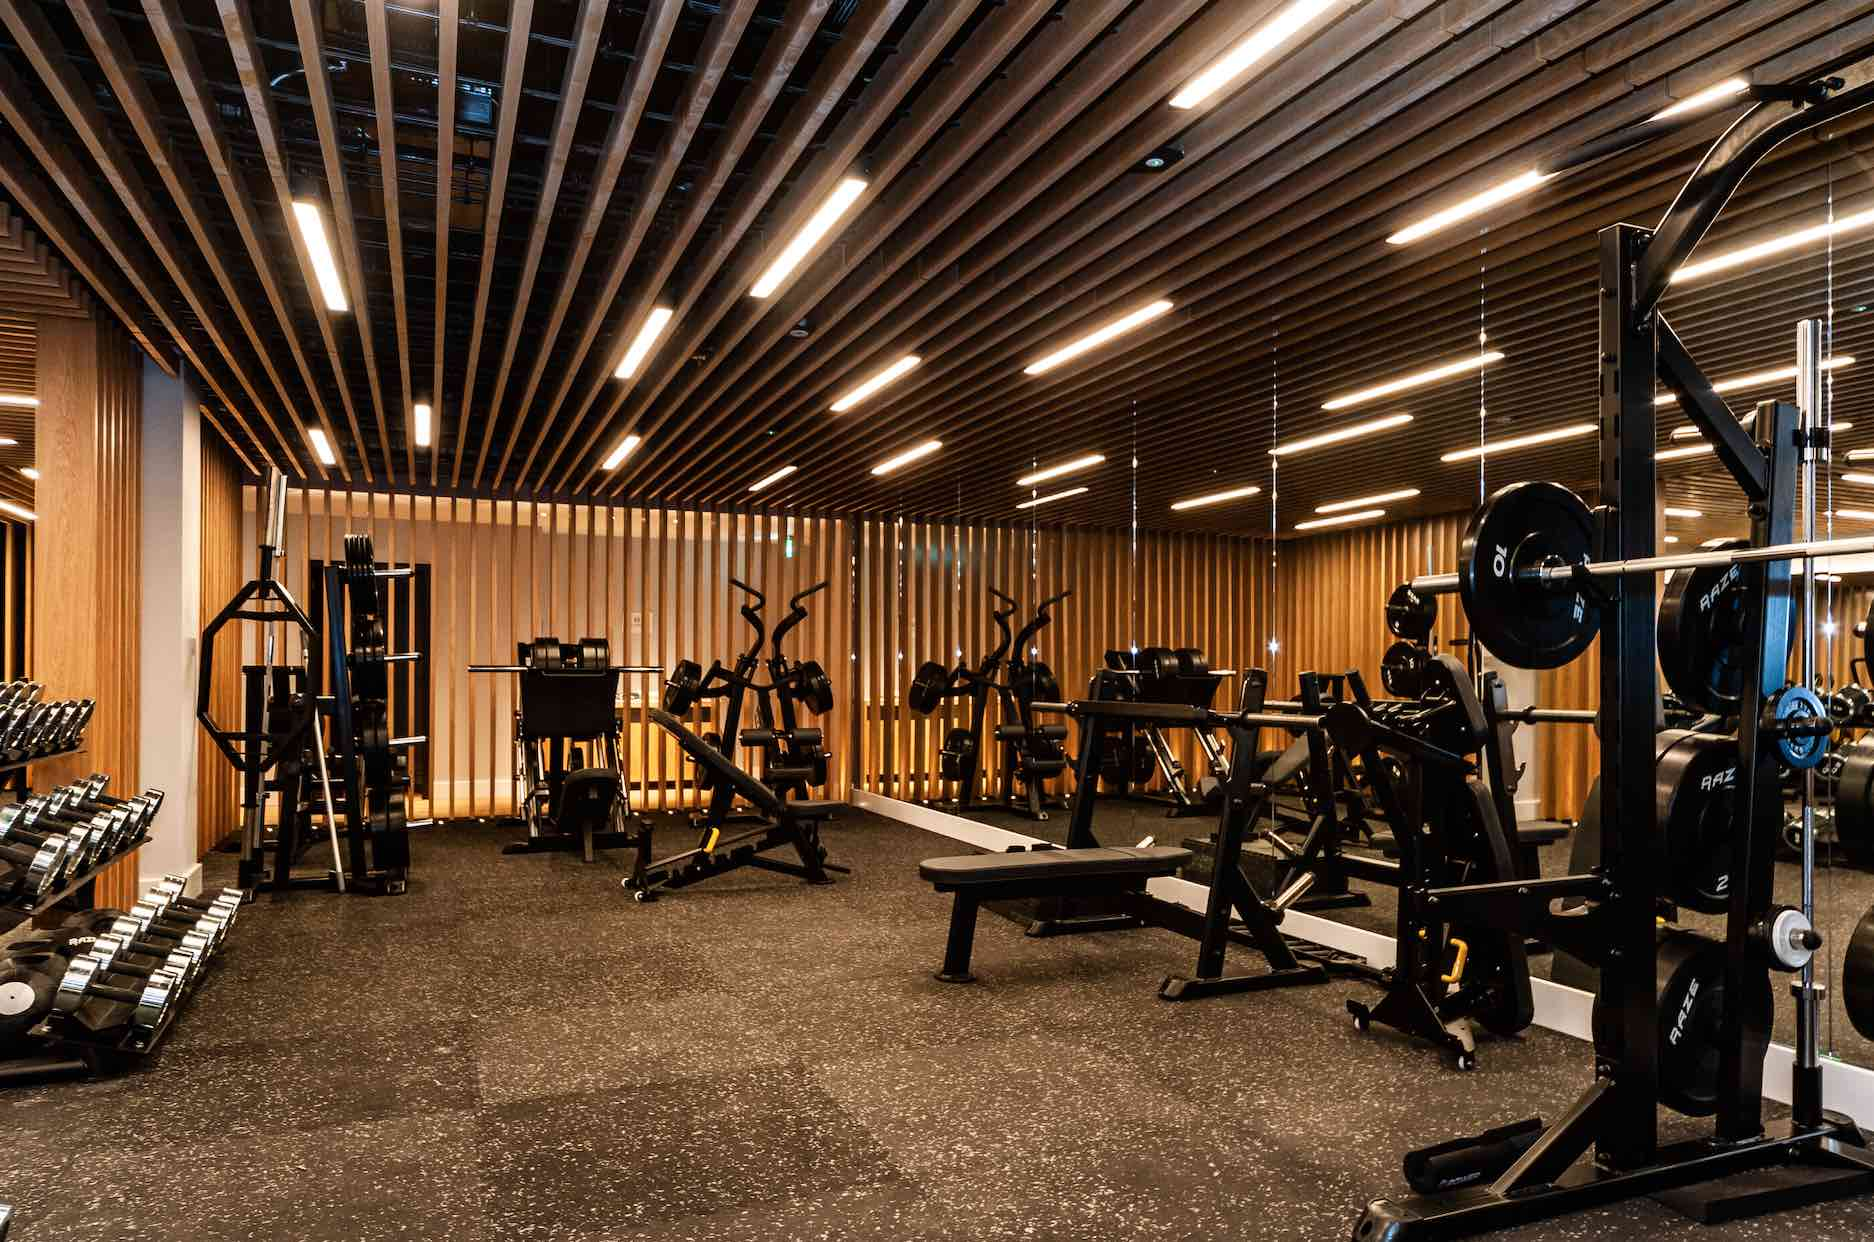 Matt Roberts Gym at The Langley, Buckinghamshire